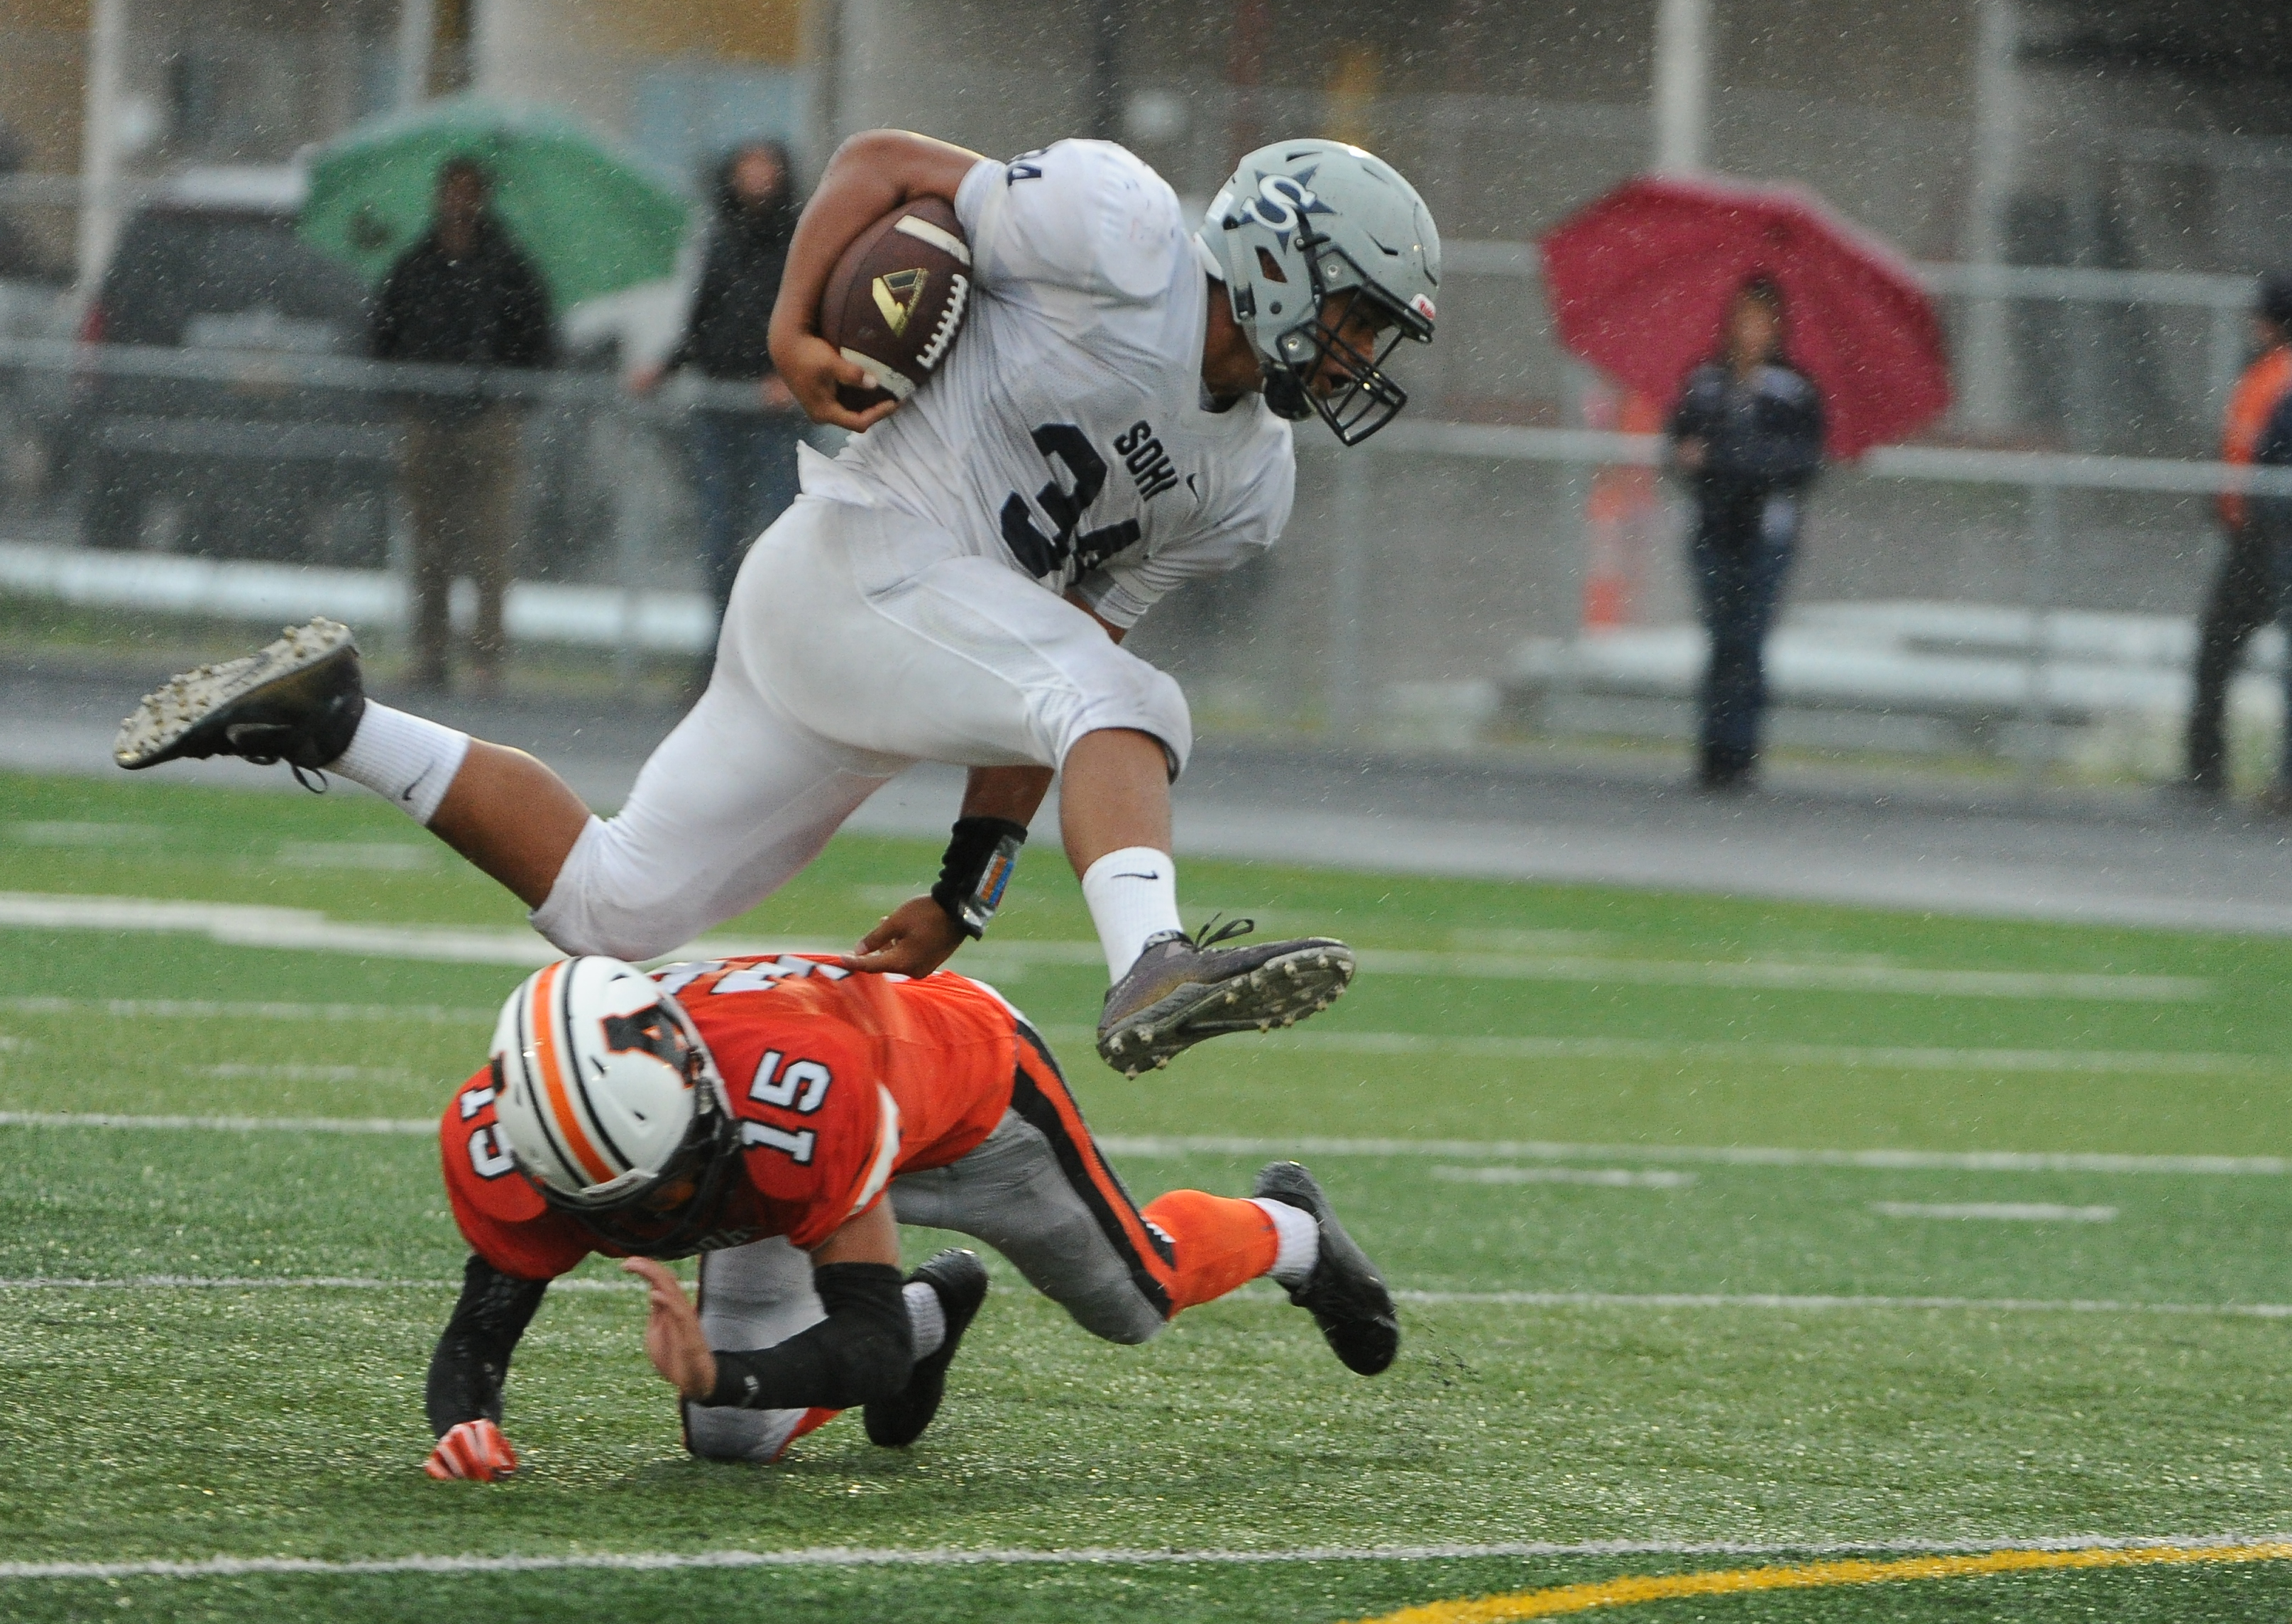 Soldotna shuts out West for 50th straight football win